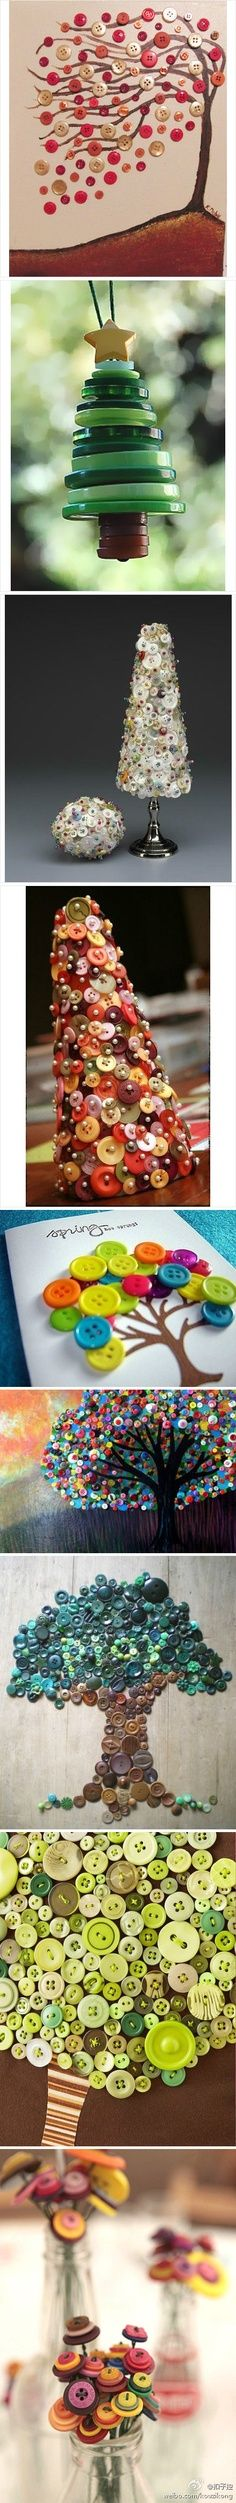 diy button craft ideas